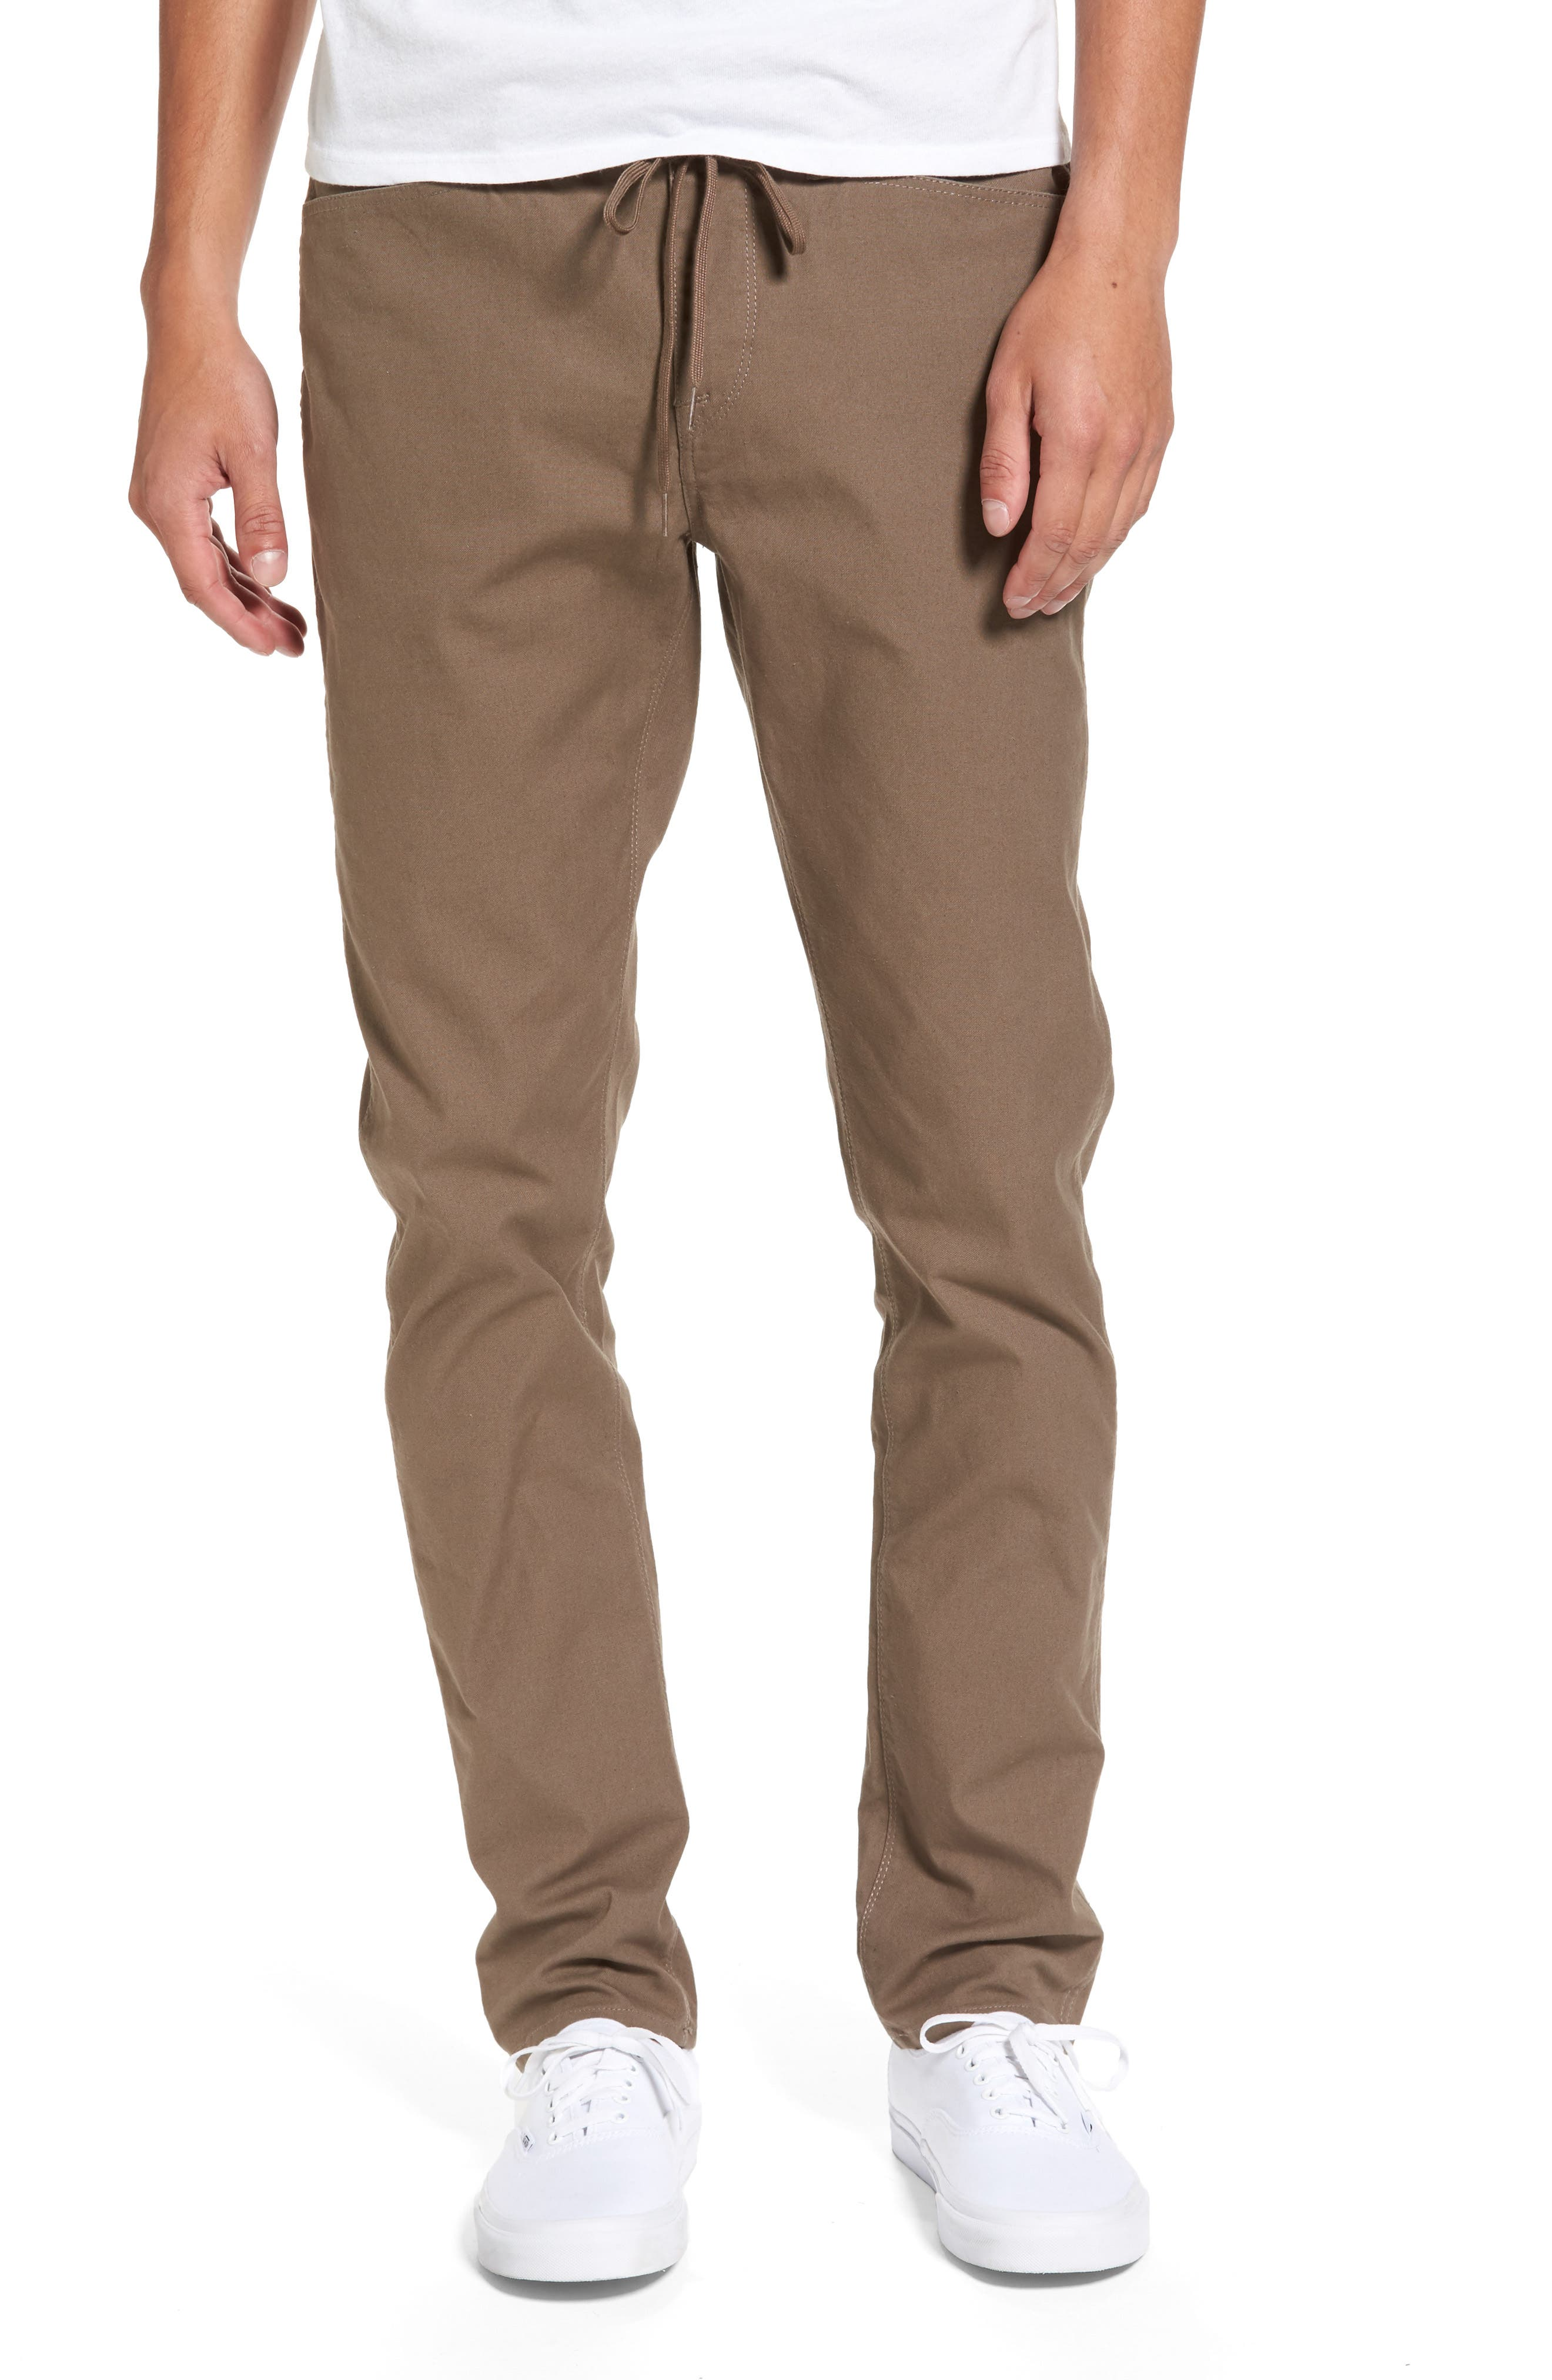 'VSM Gritter' Tapered Chinos,                             Main thumbnail 1, color,                             Beige